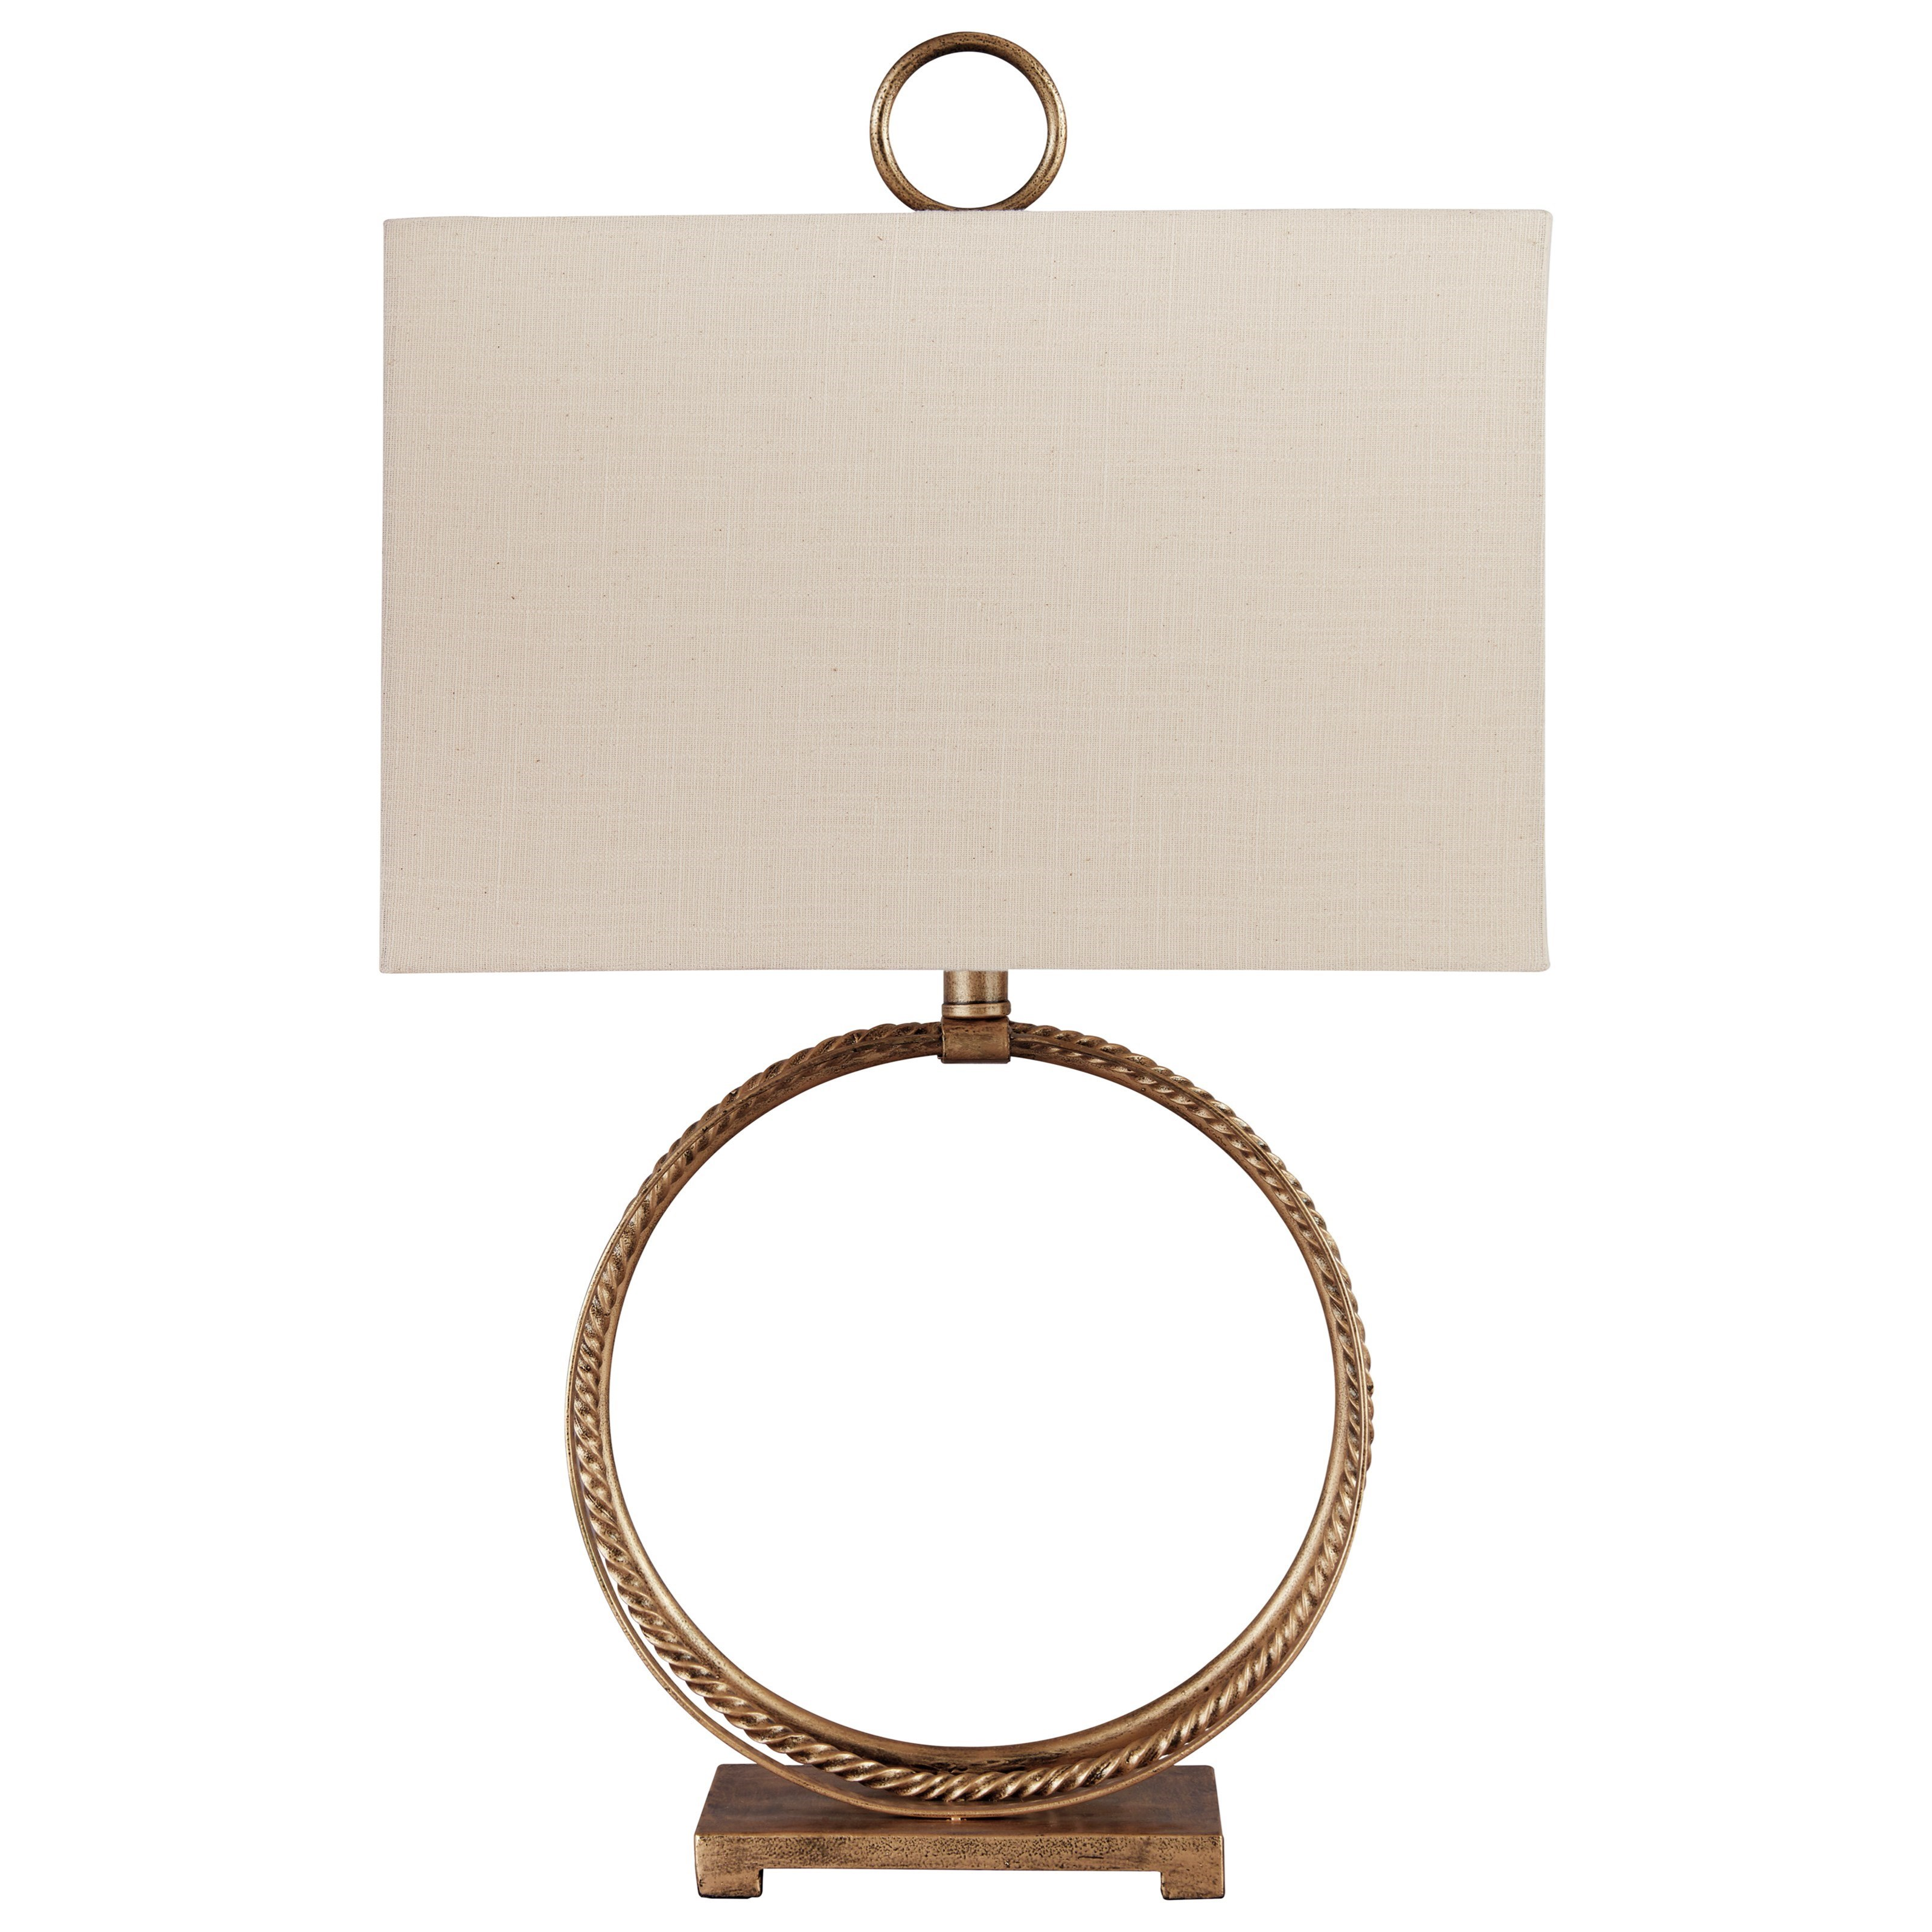 Lamps - Contemporary Mahala Antique Gold Metal Table Lamp by Vendor 3 at Becker Furniture